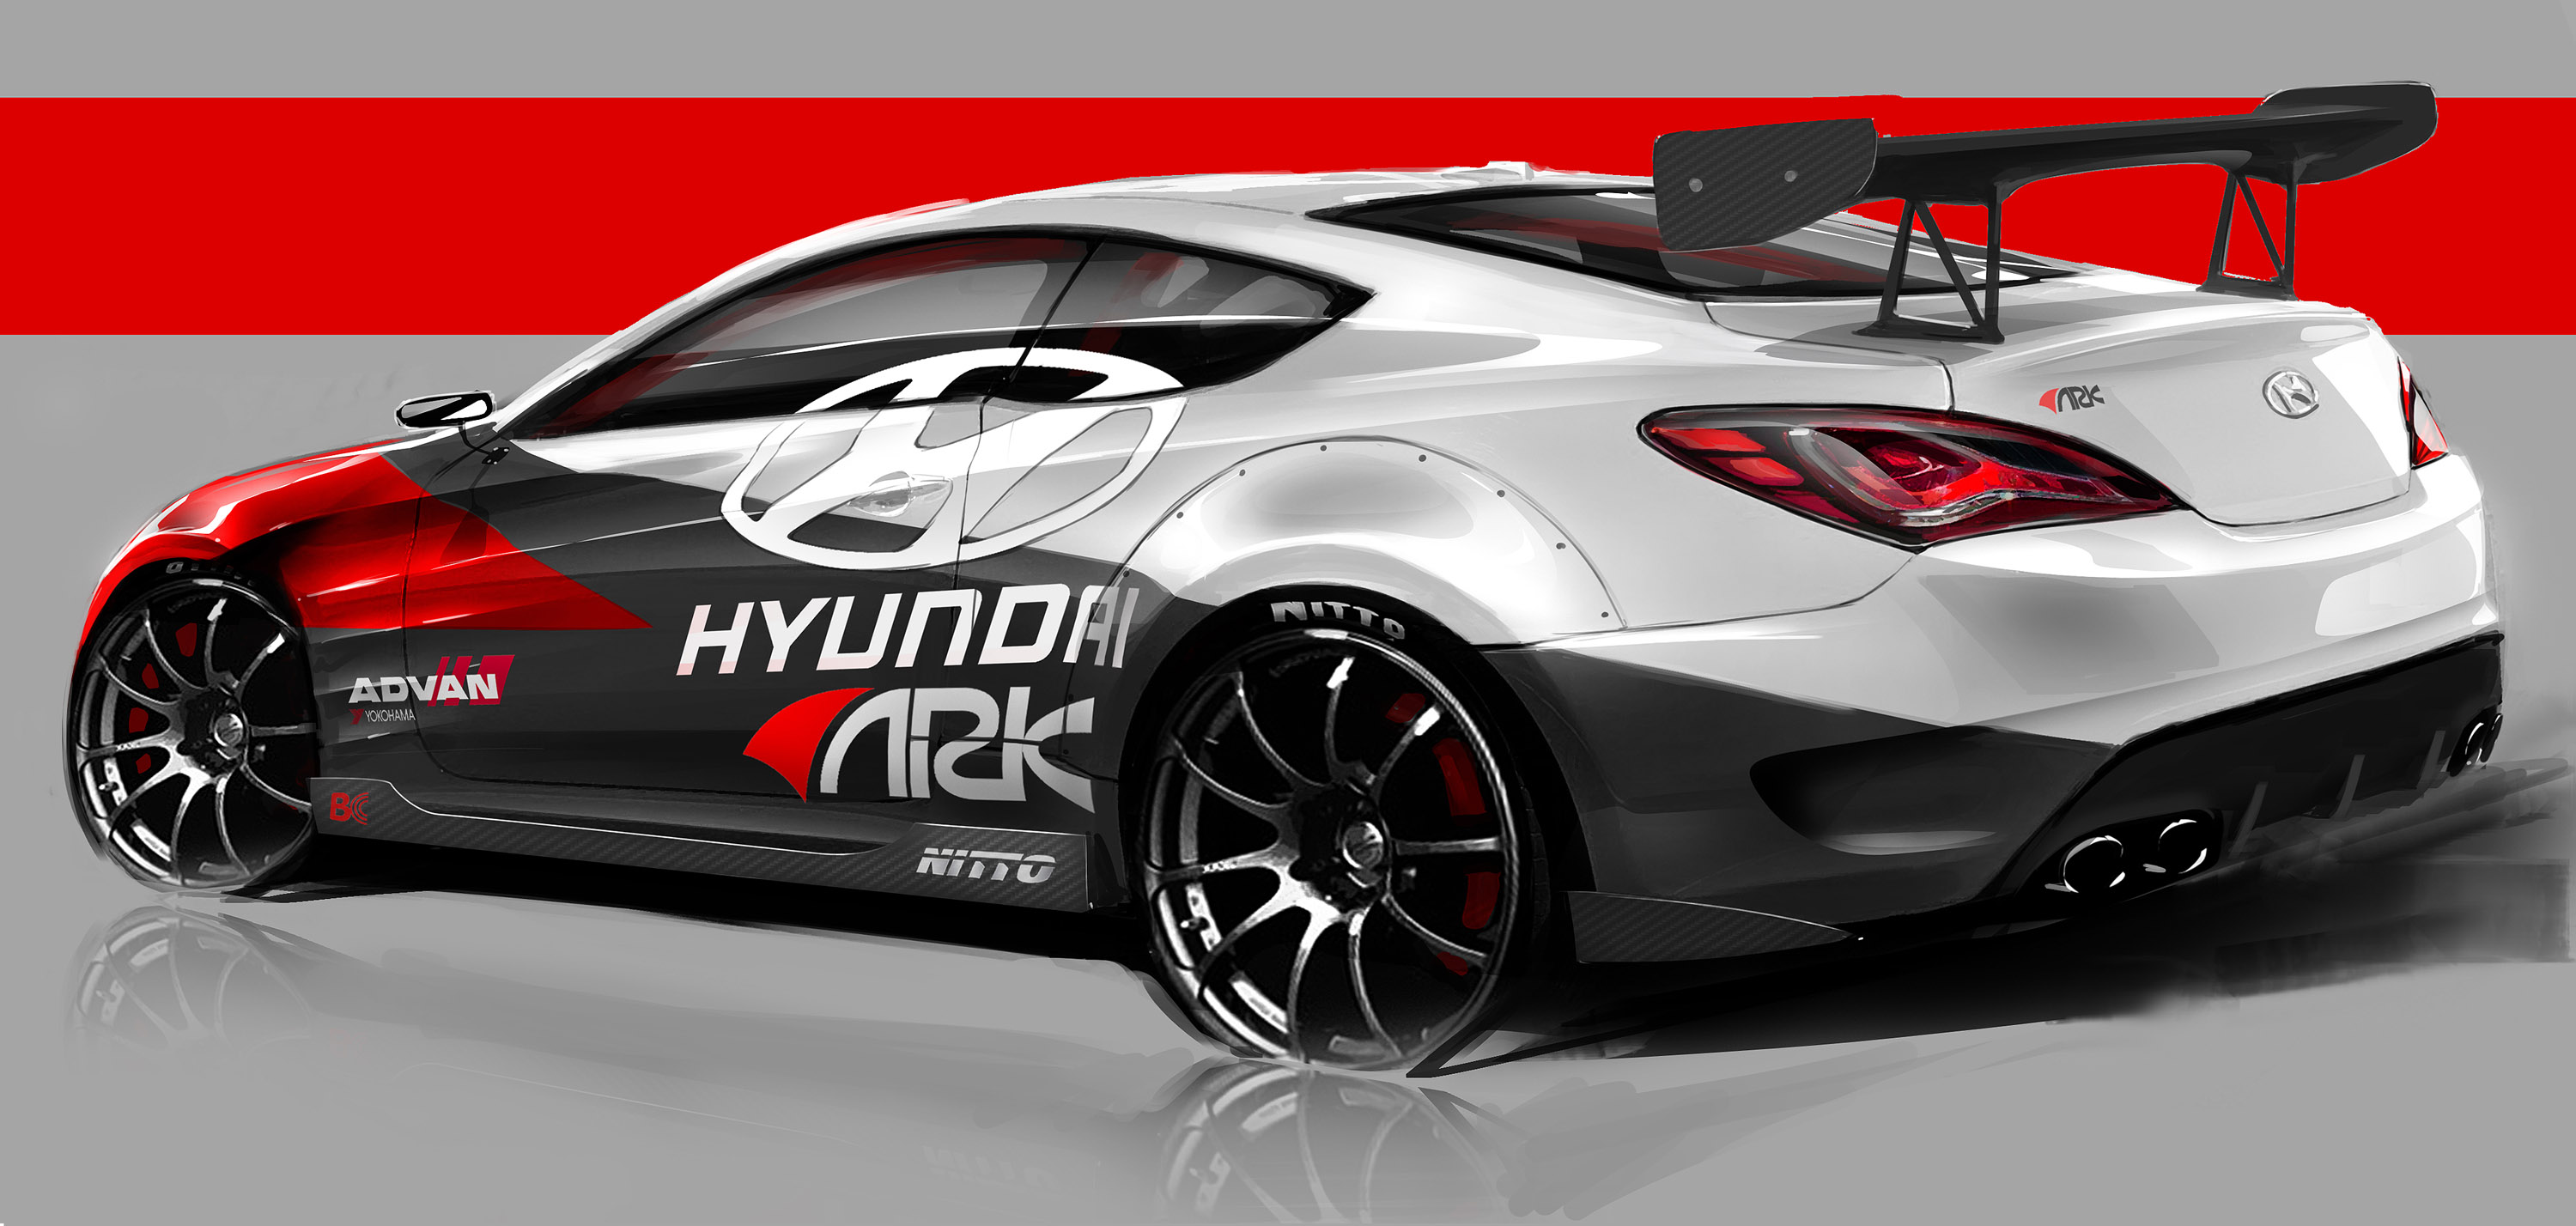 Worksheet. ARK Hyundai Genesis Coupe RSpec Track Edition to be revealed at